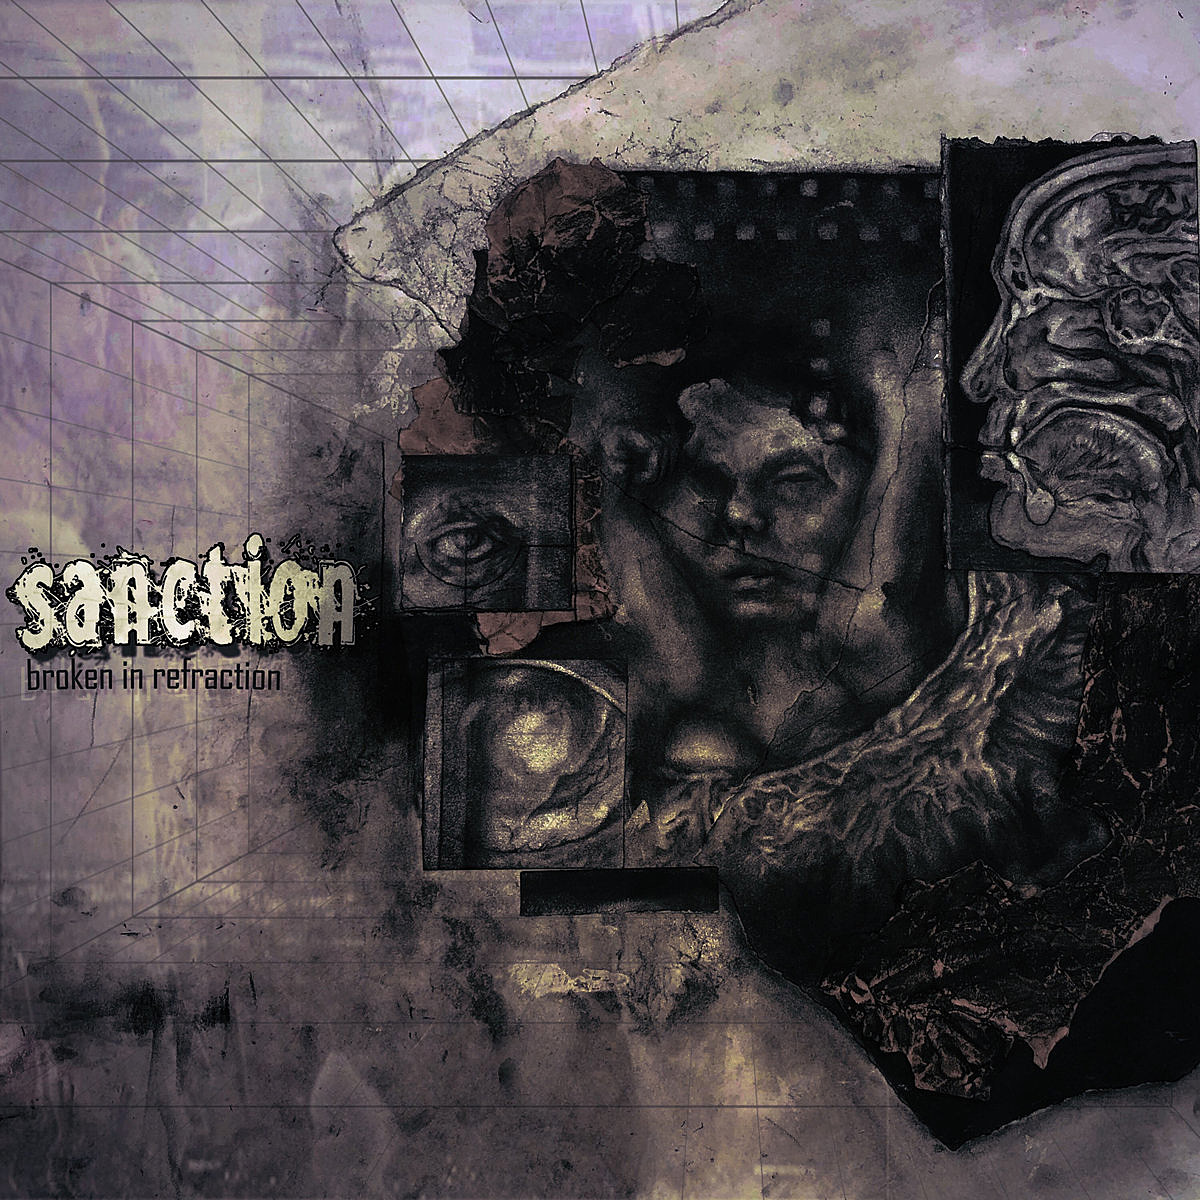 Sanction, Queensway, Vatican Fuming Mouth announce tour